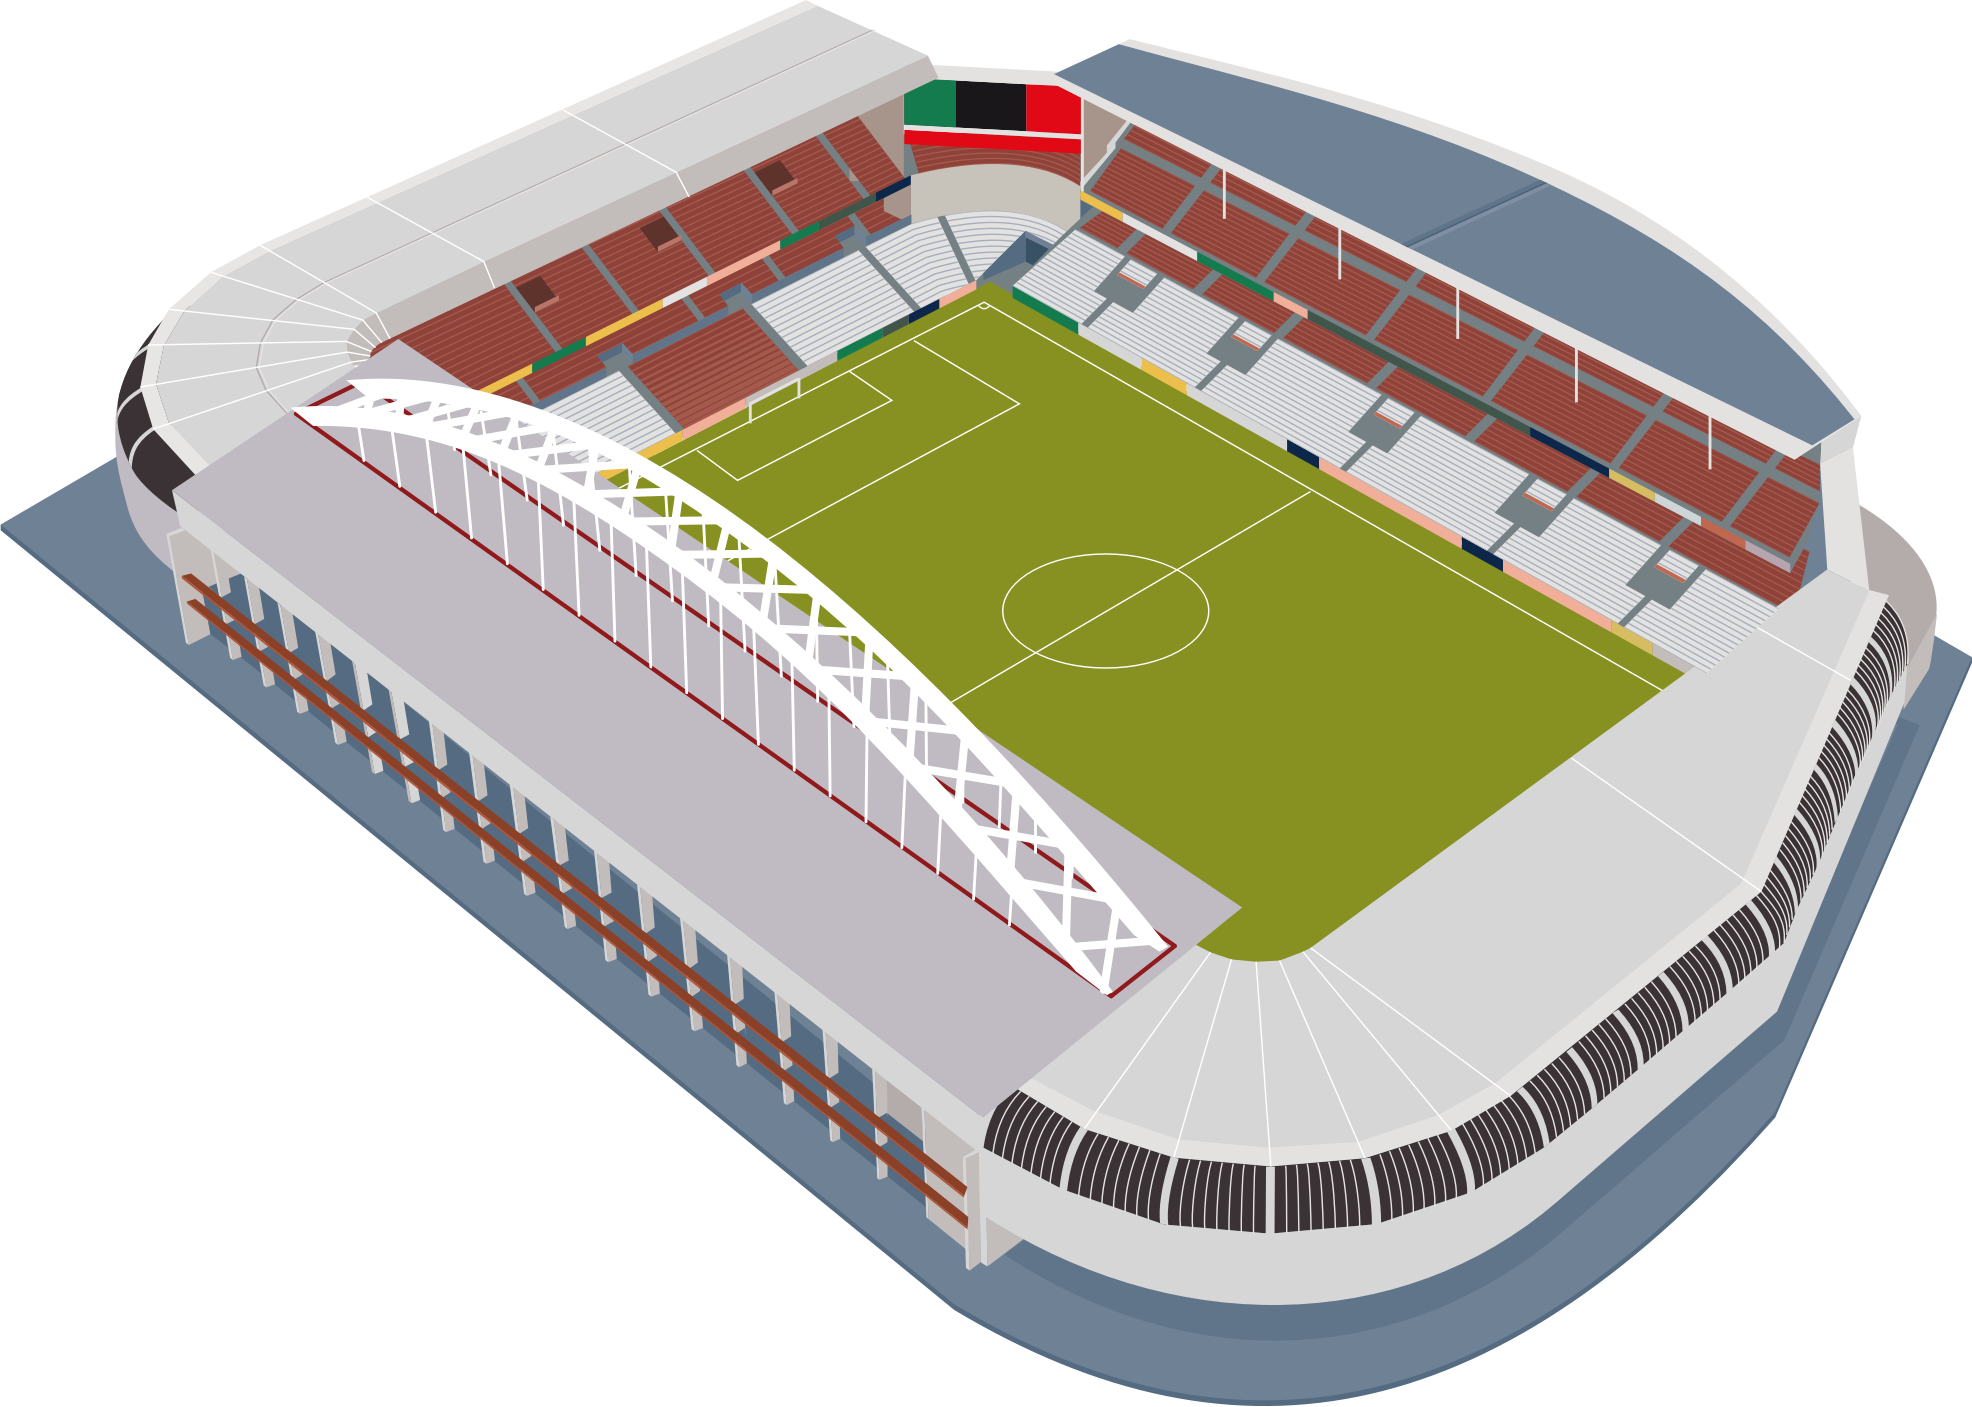 Football ground clipground soccer. Stadium clipart medium png freeuse download